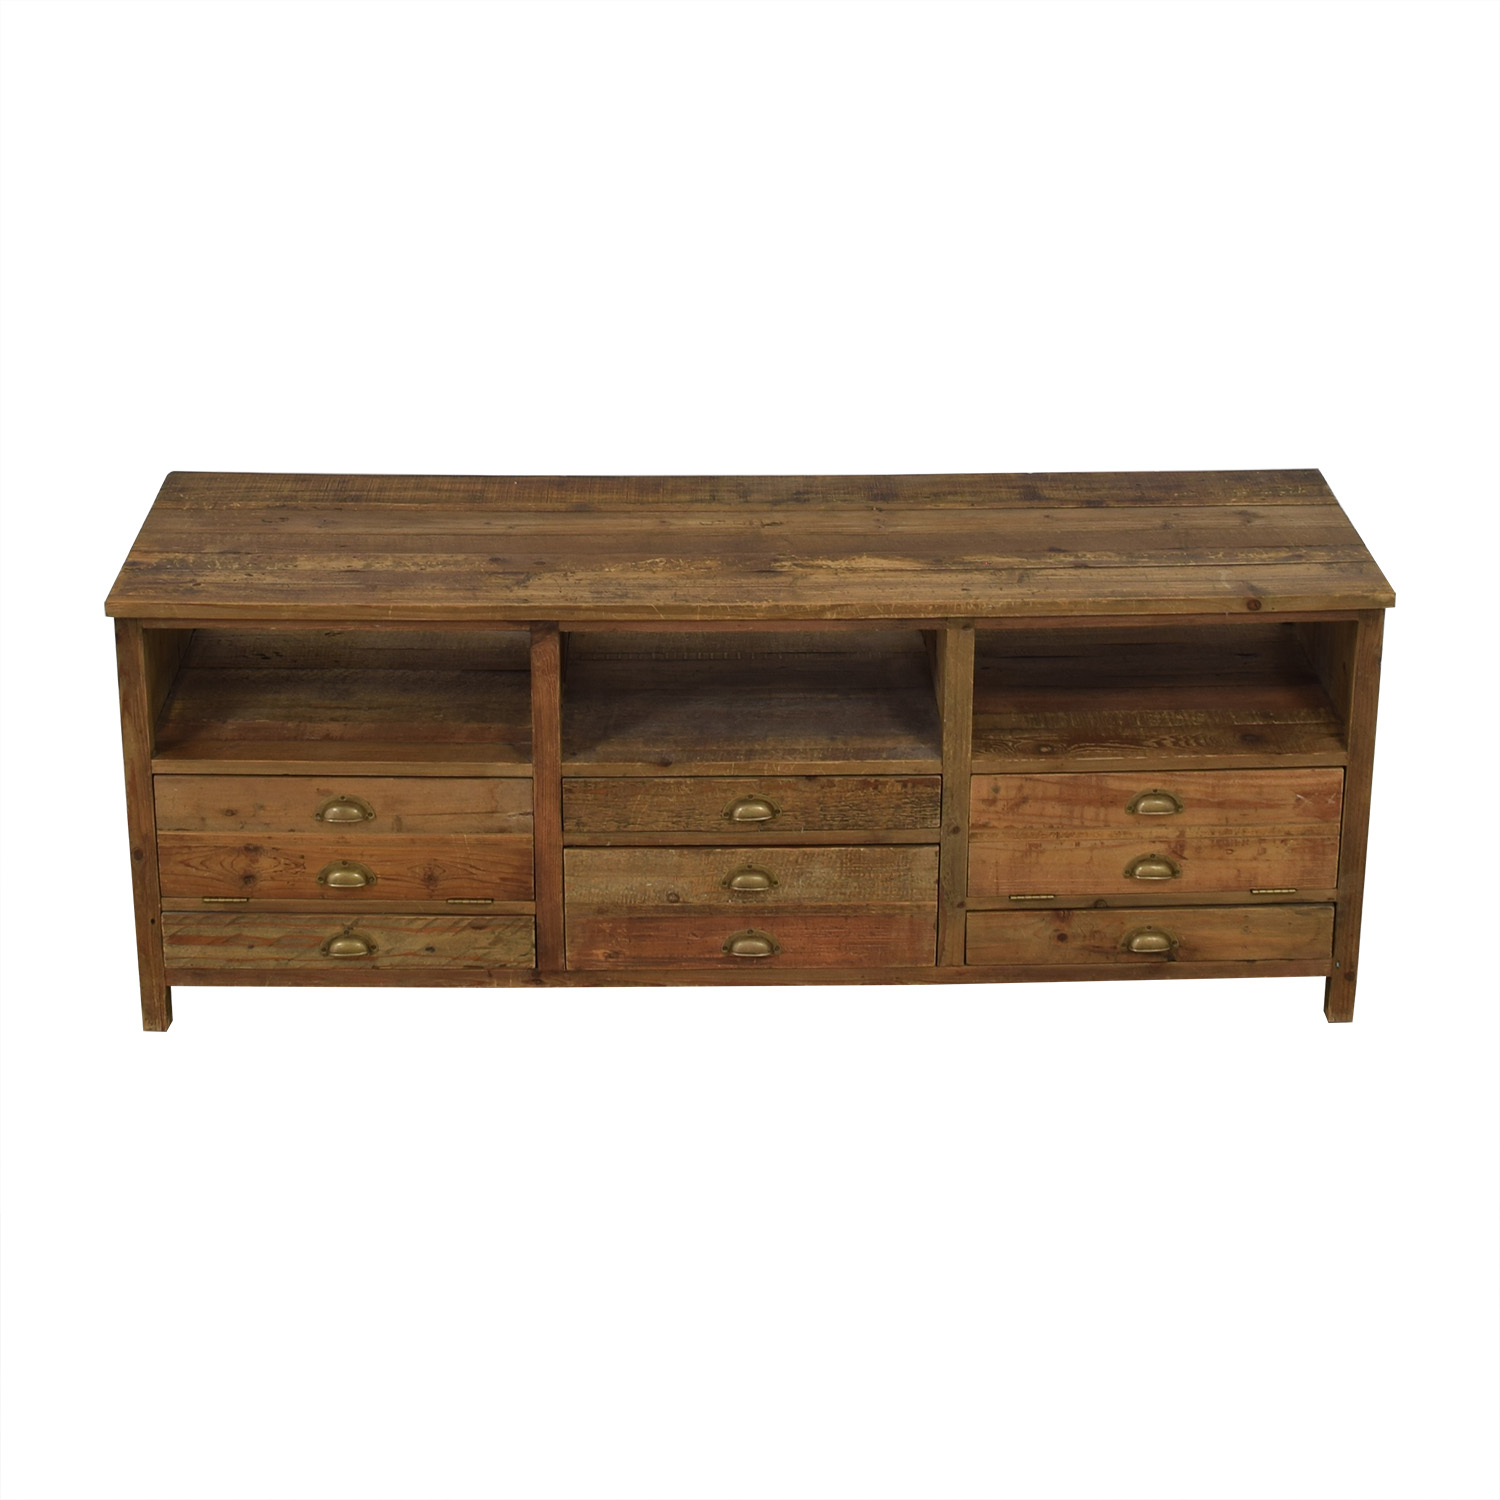 Mecox Gardens Mecox Gardens Grand Entertainment Rustic Wood Console coupon